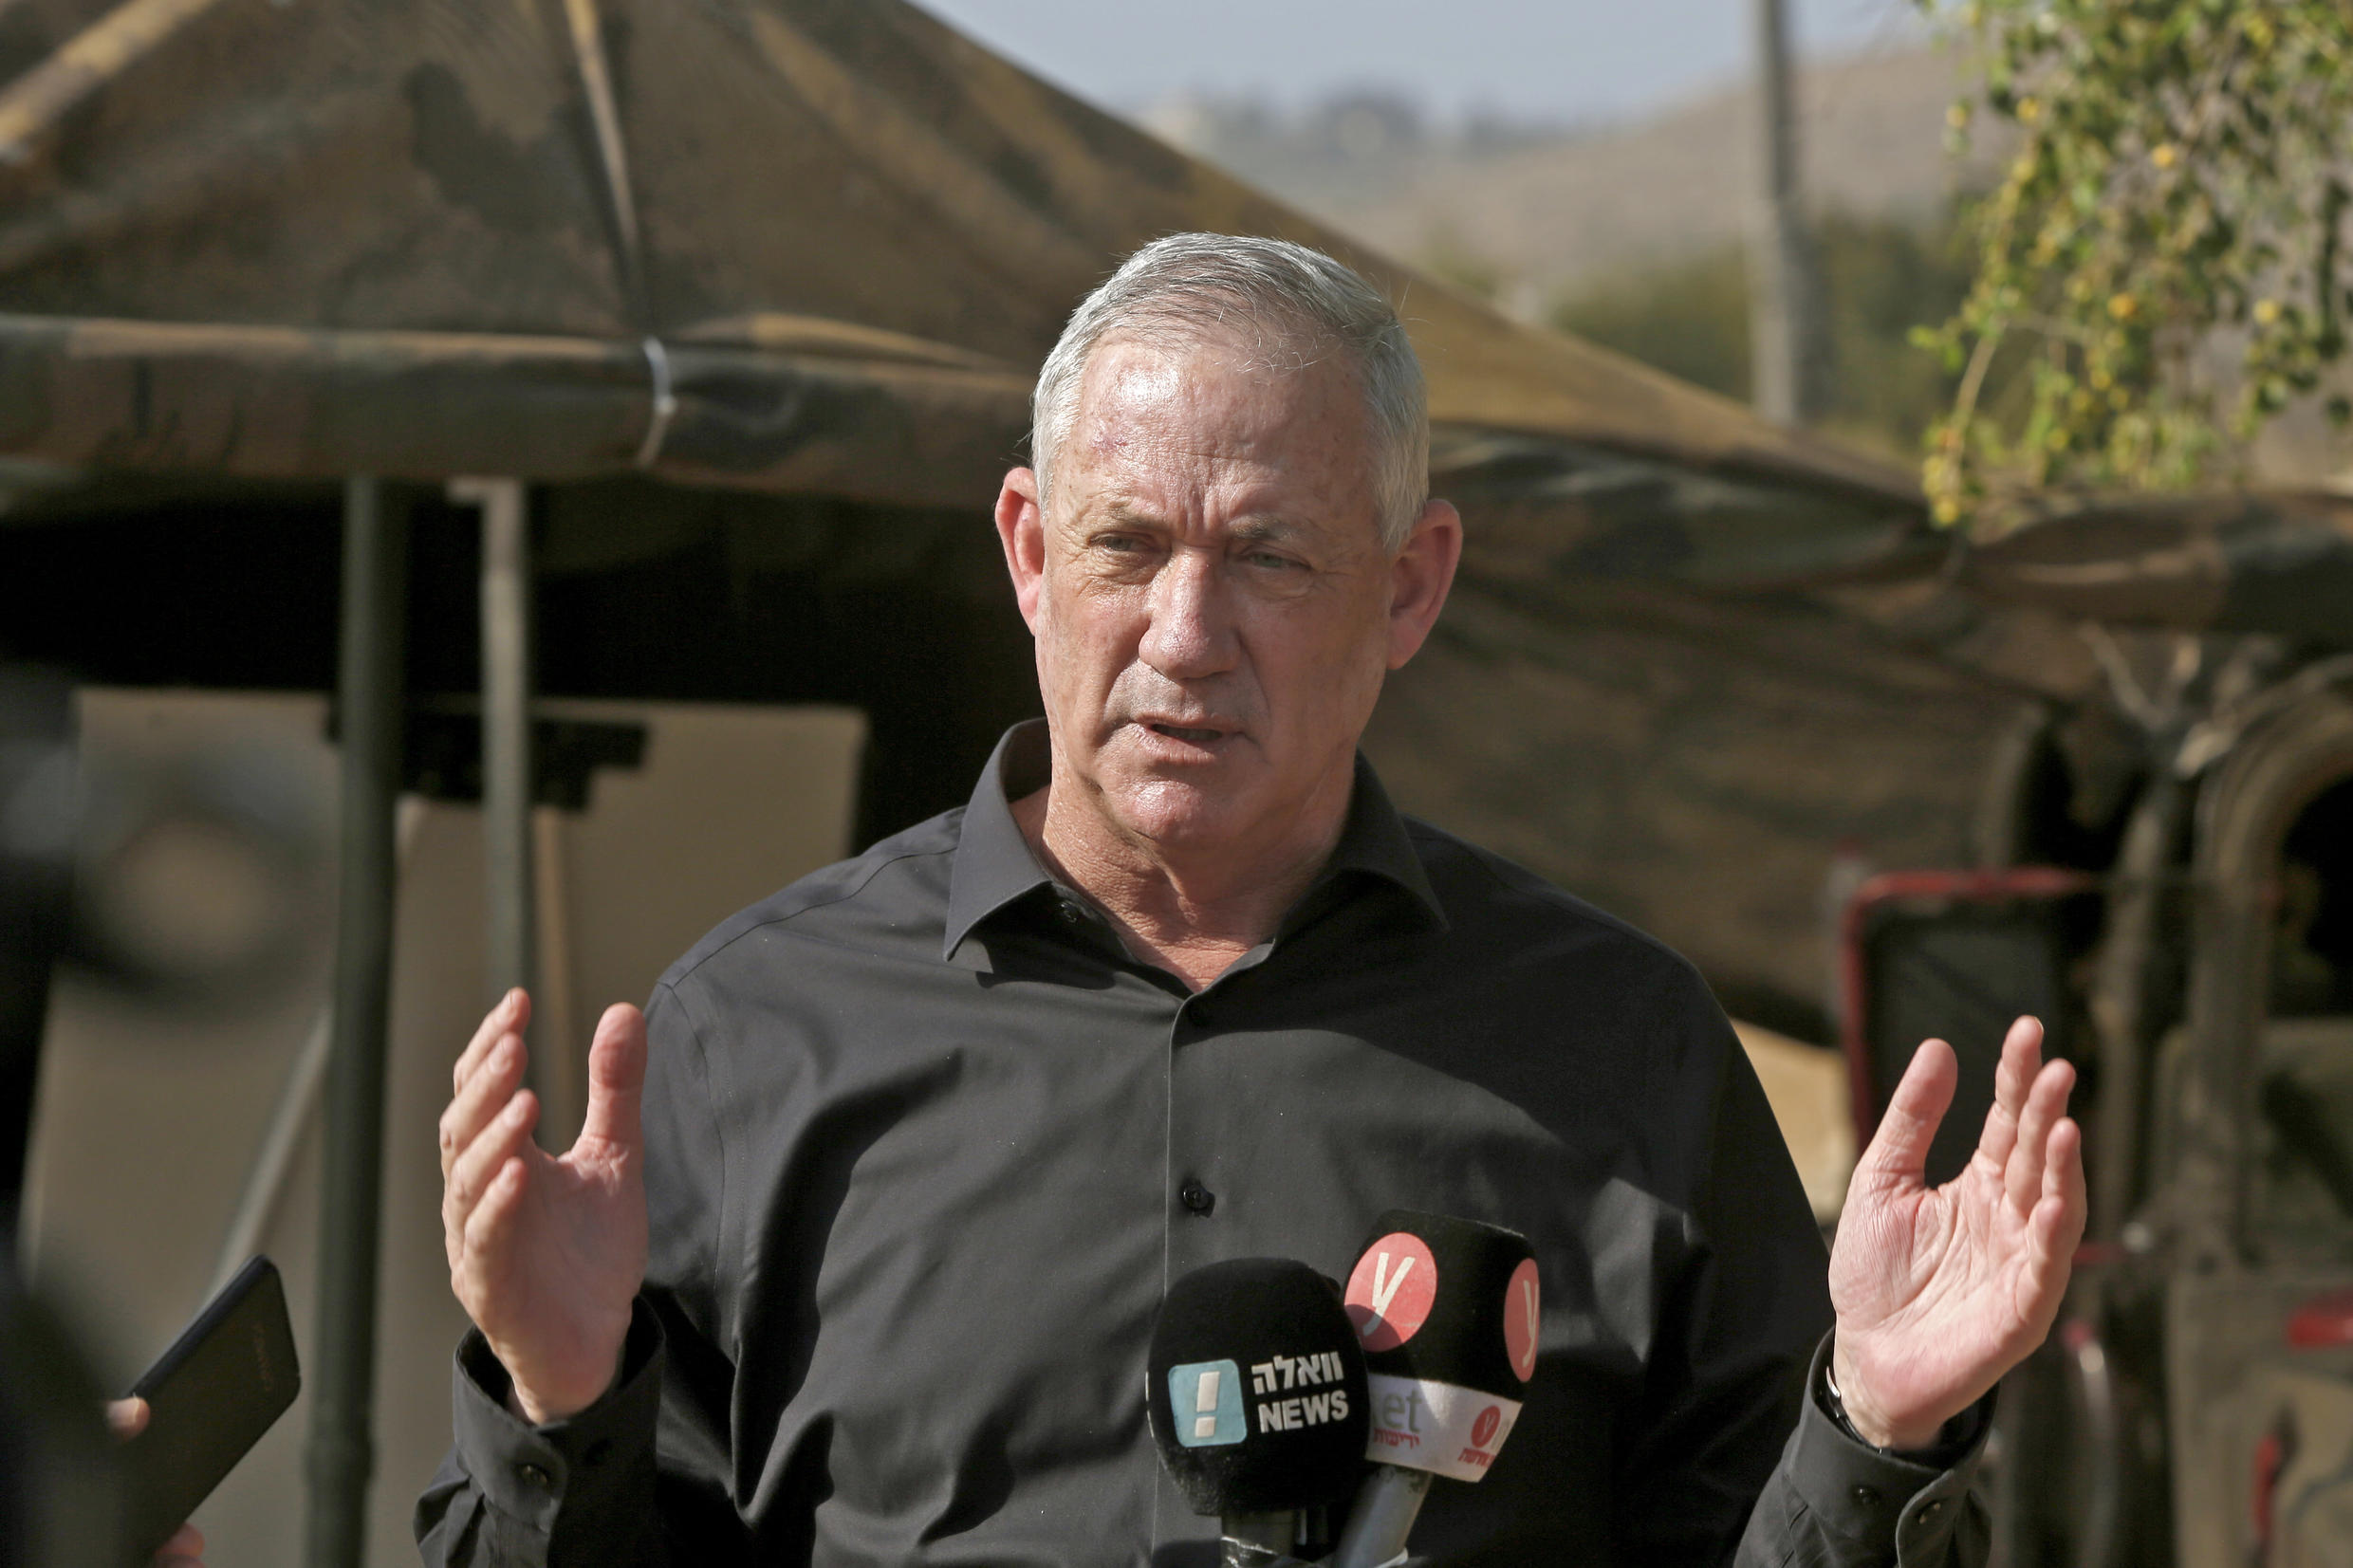 Israeli Defence Minister Benny Gantz speaks to the media during a military drill near Kibbutz Ravid in the northern part of Israel on October 27, 2020